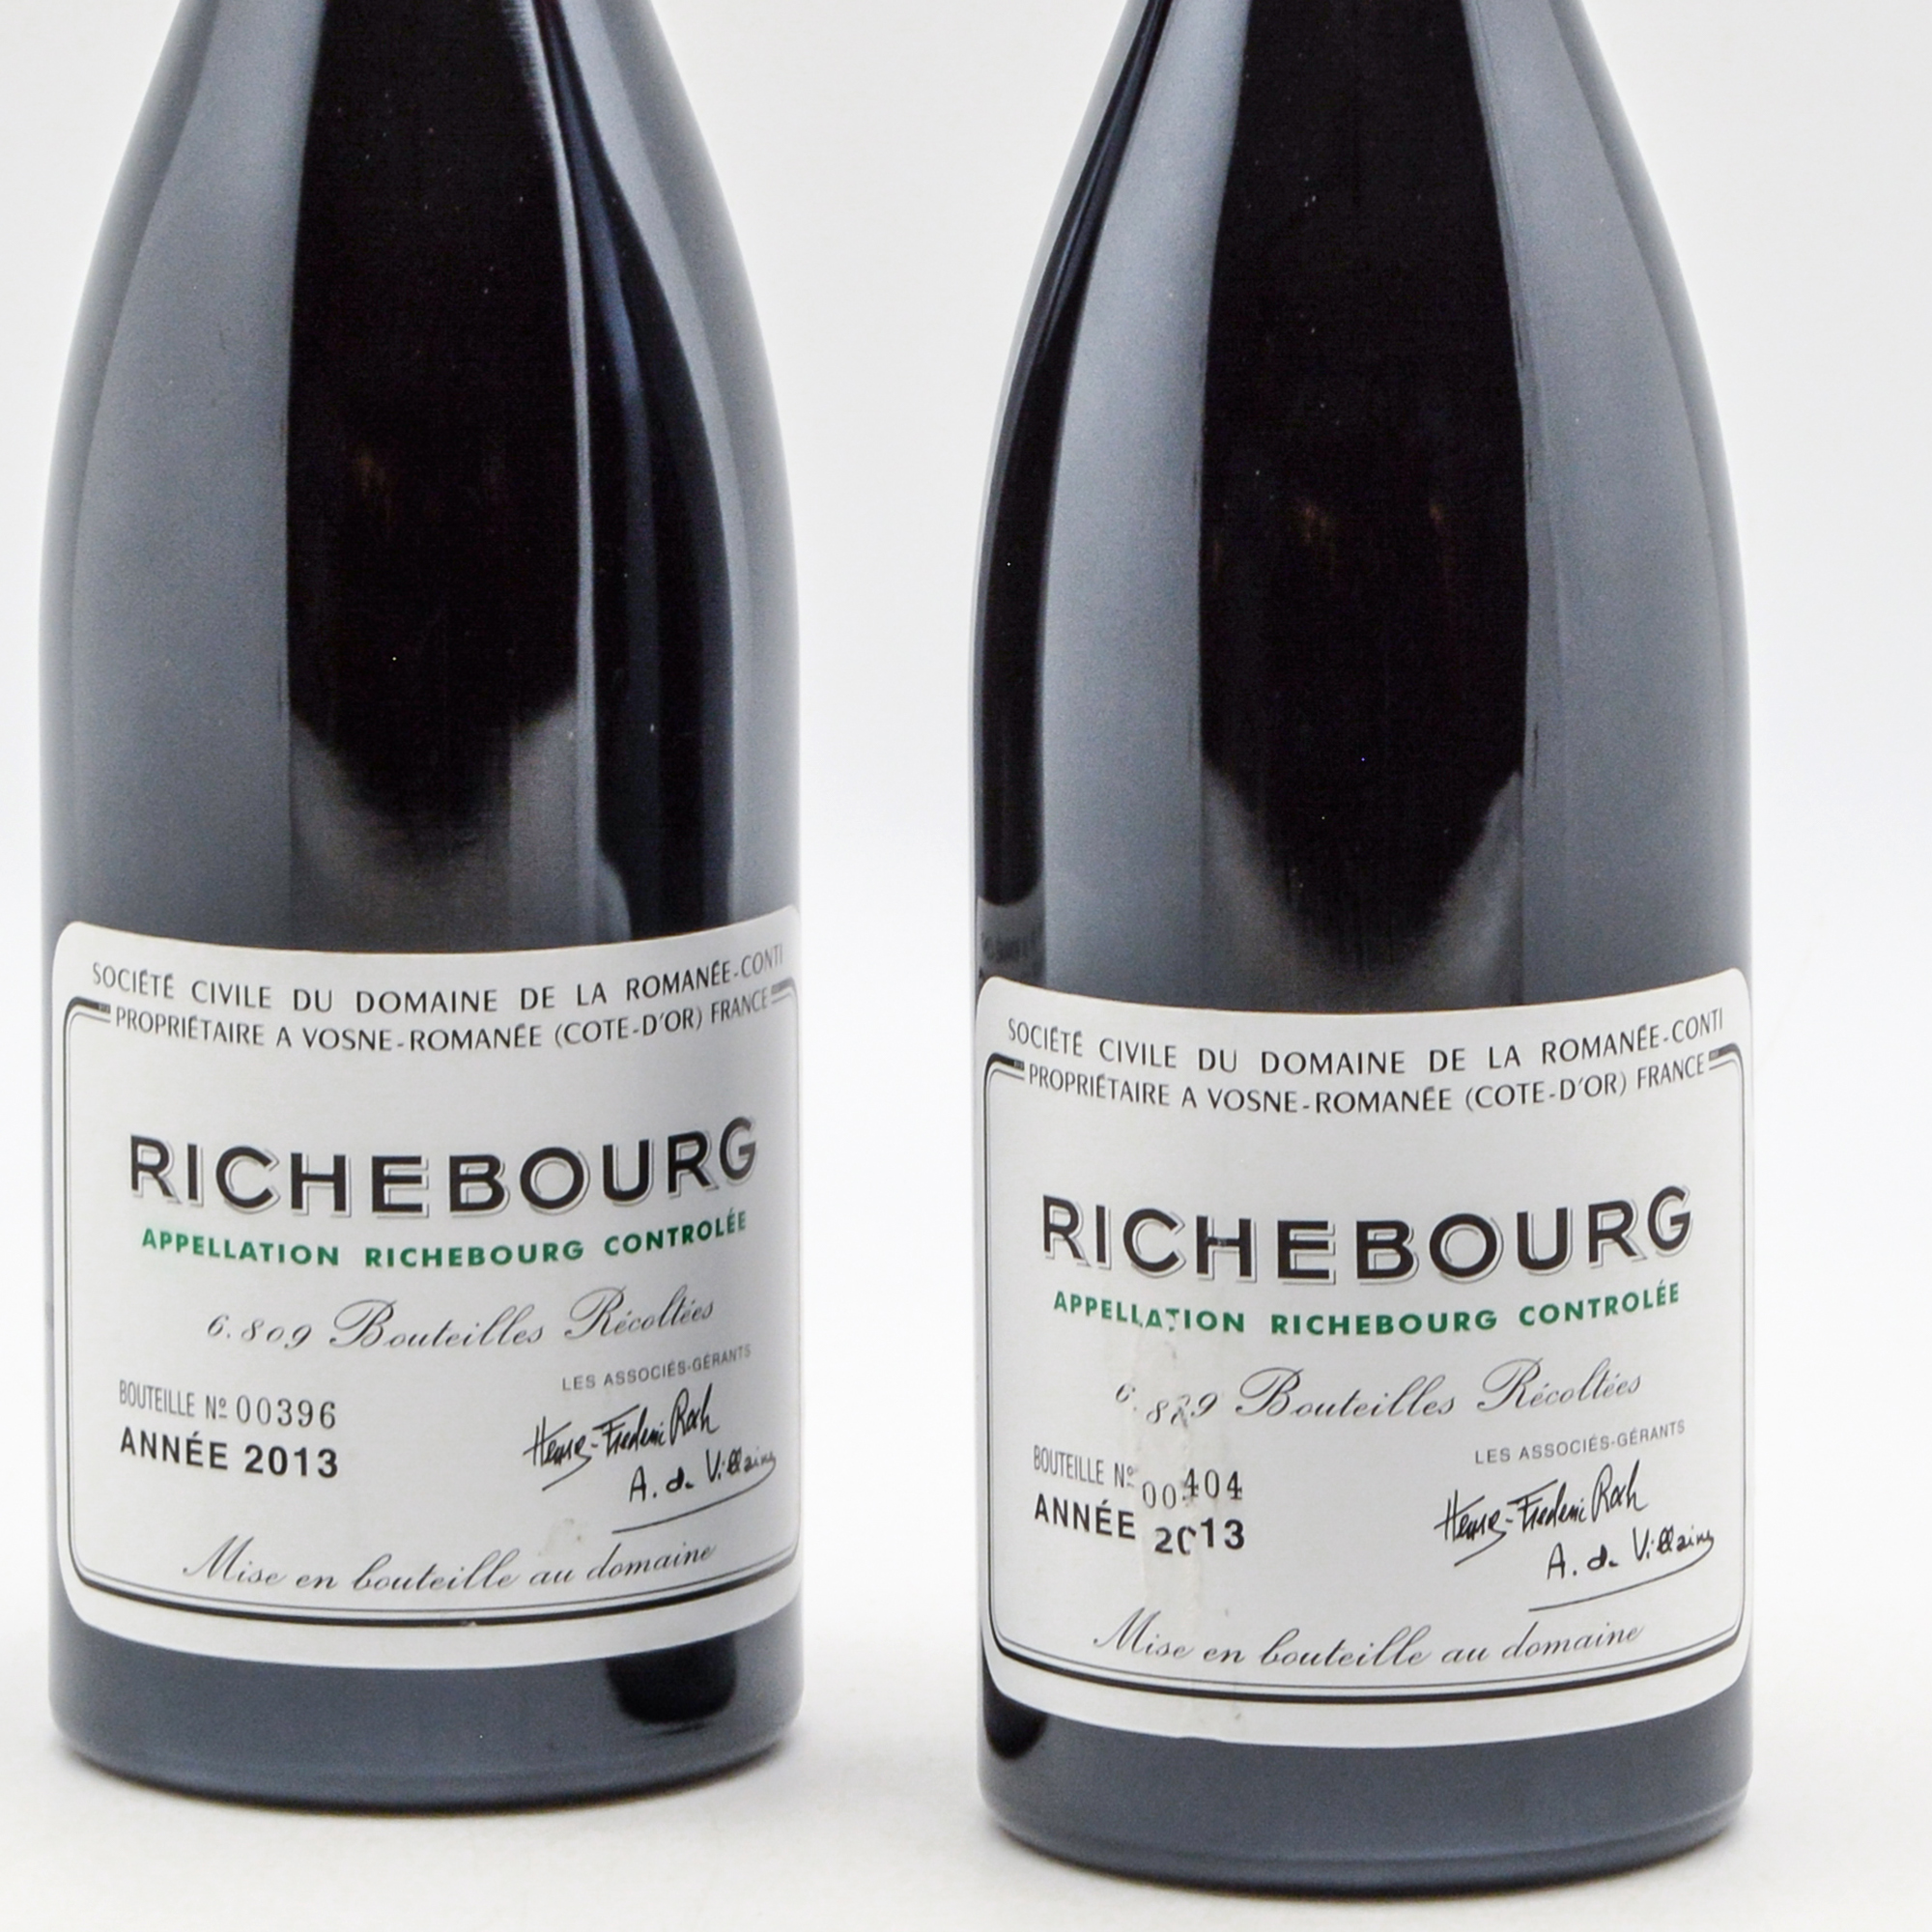 Domaine de la Romanee Conti Richebourg 2013, 2 bottles